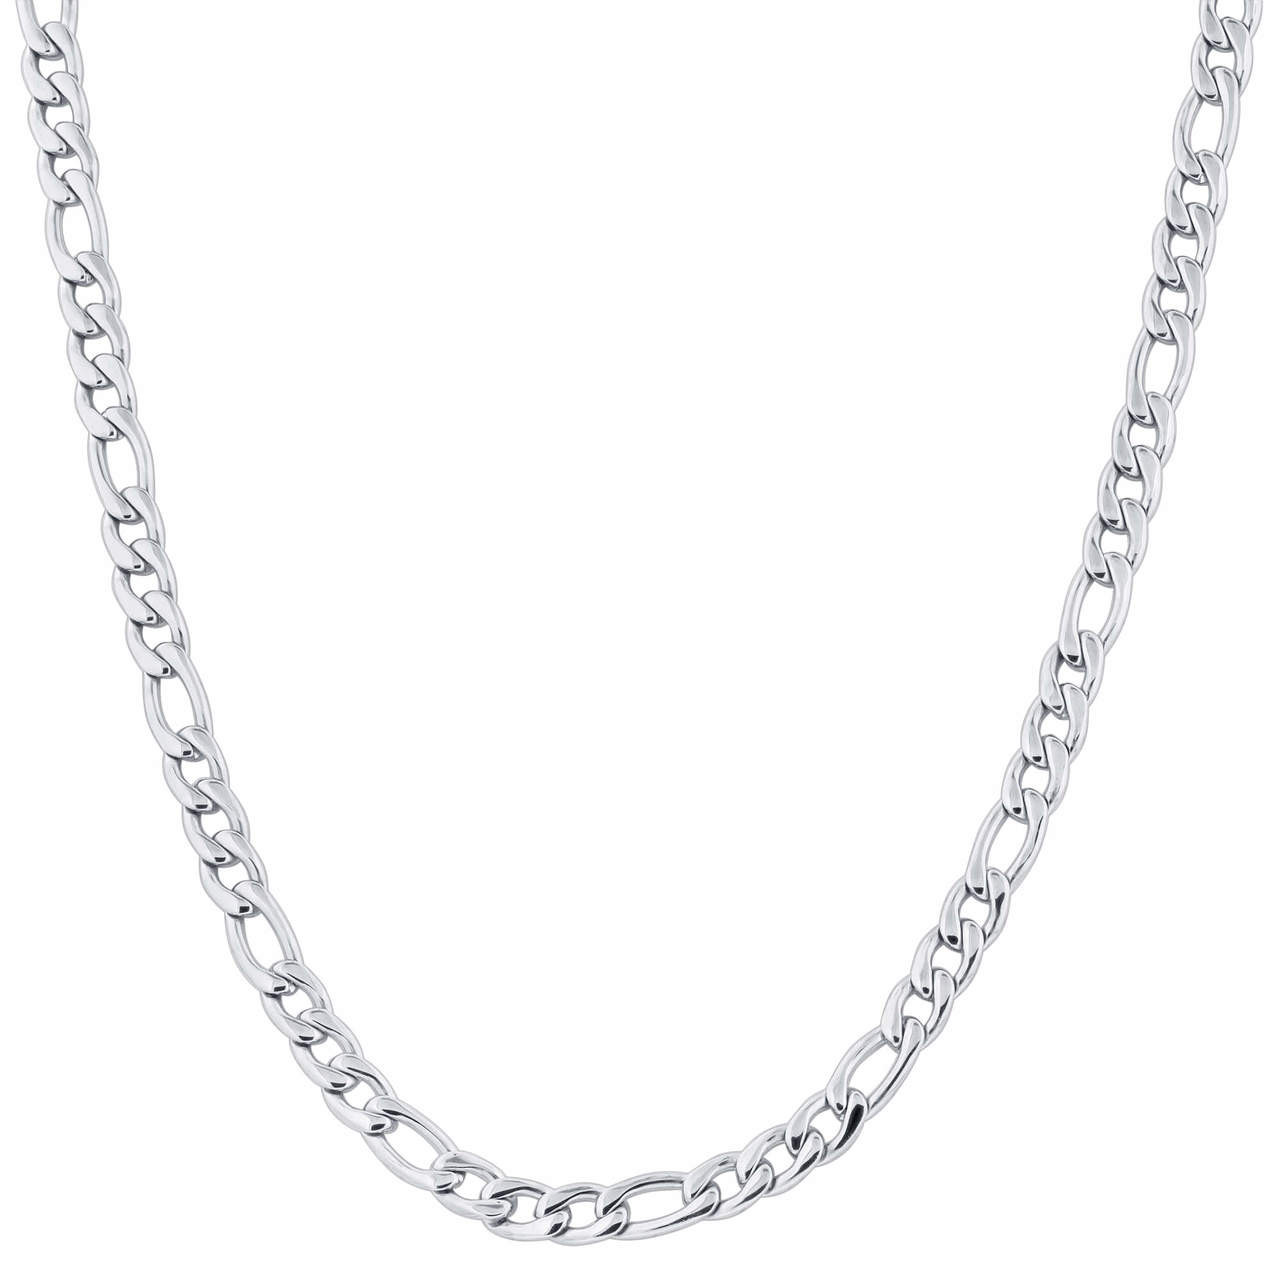 Men's Chain Necklace